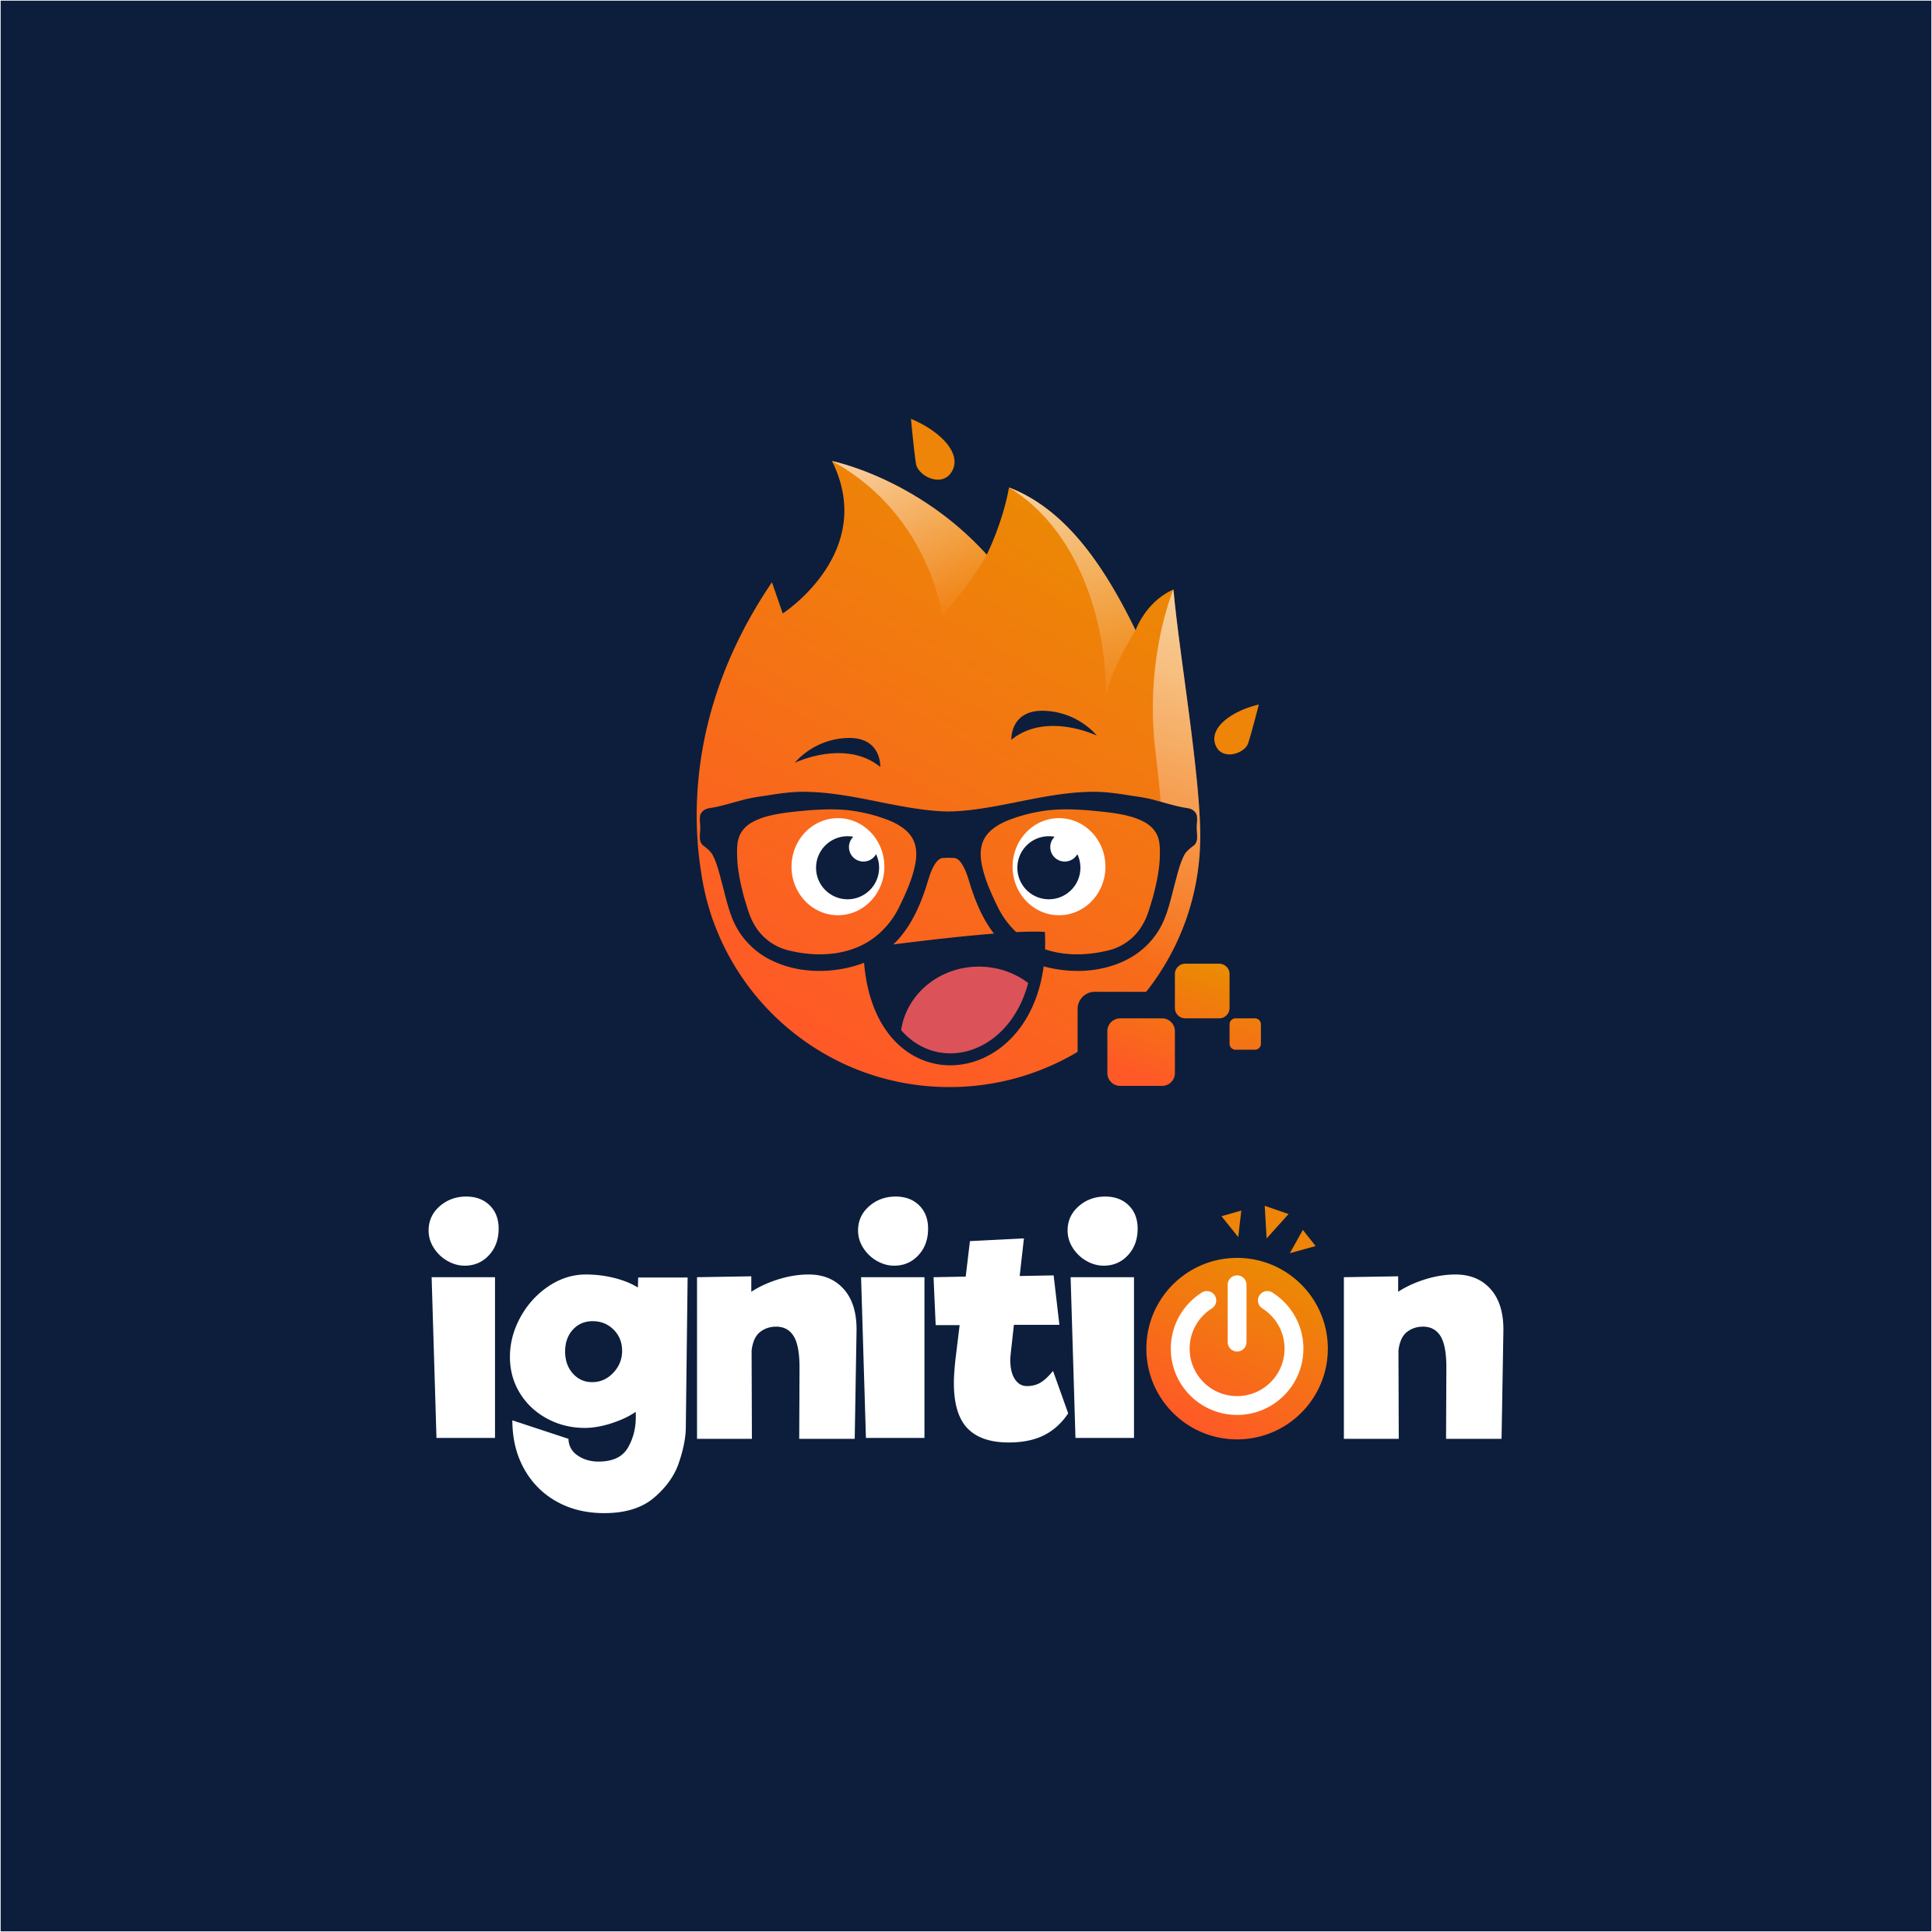 Ignition - Our digital transformation initiative needs you for its logo!